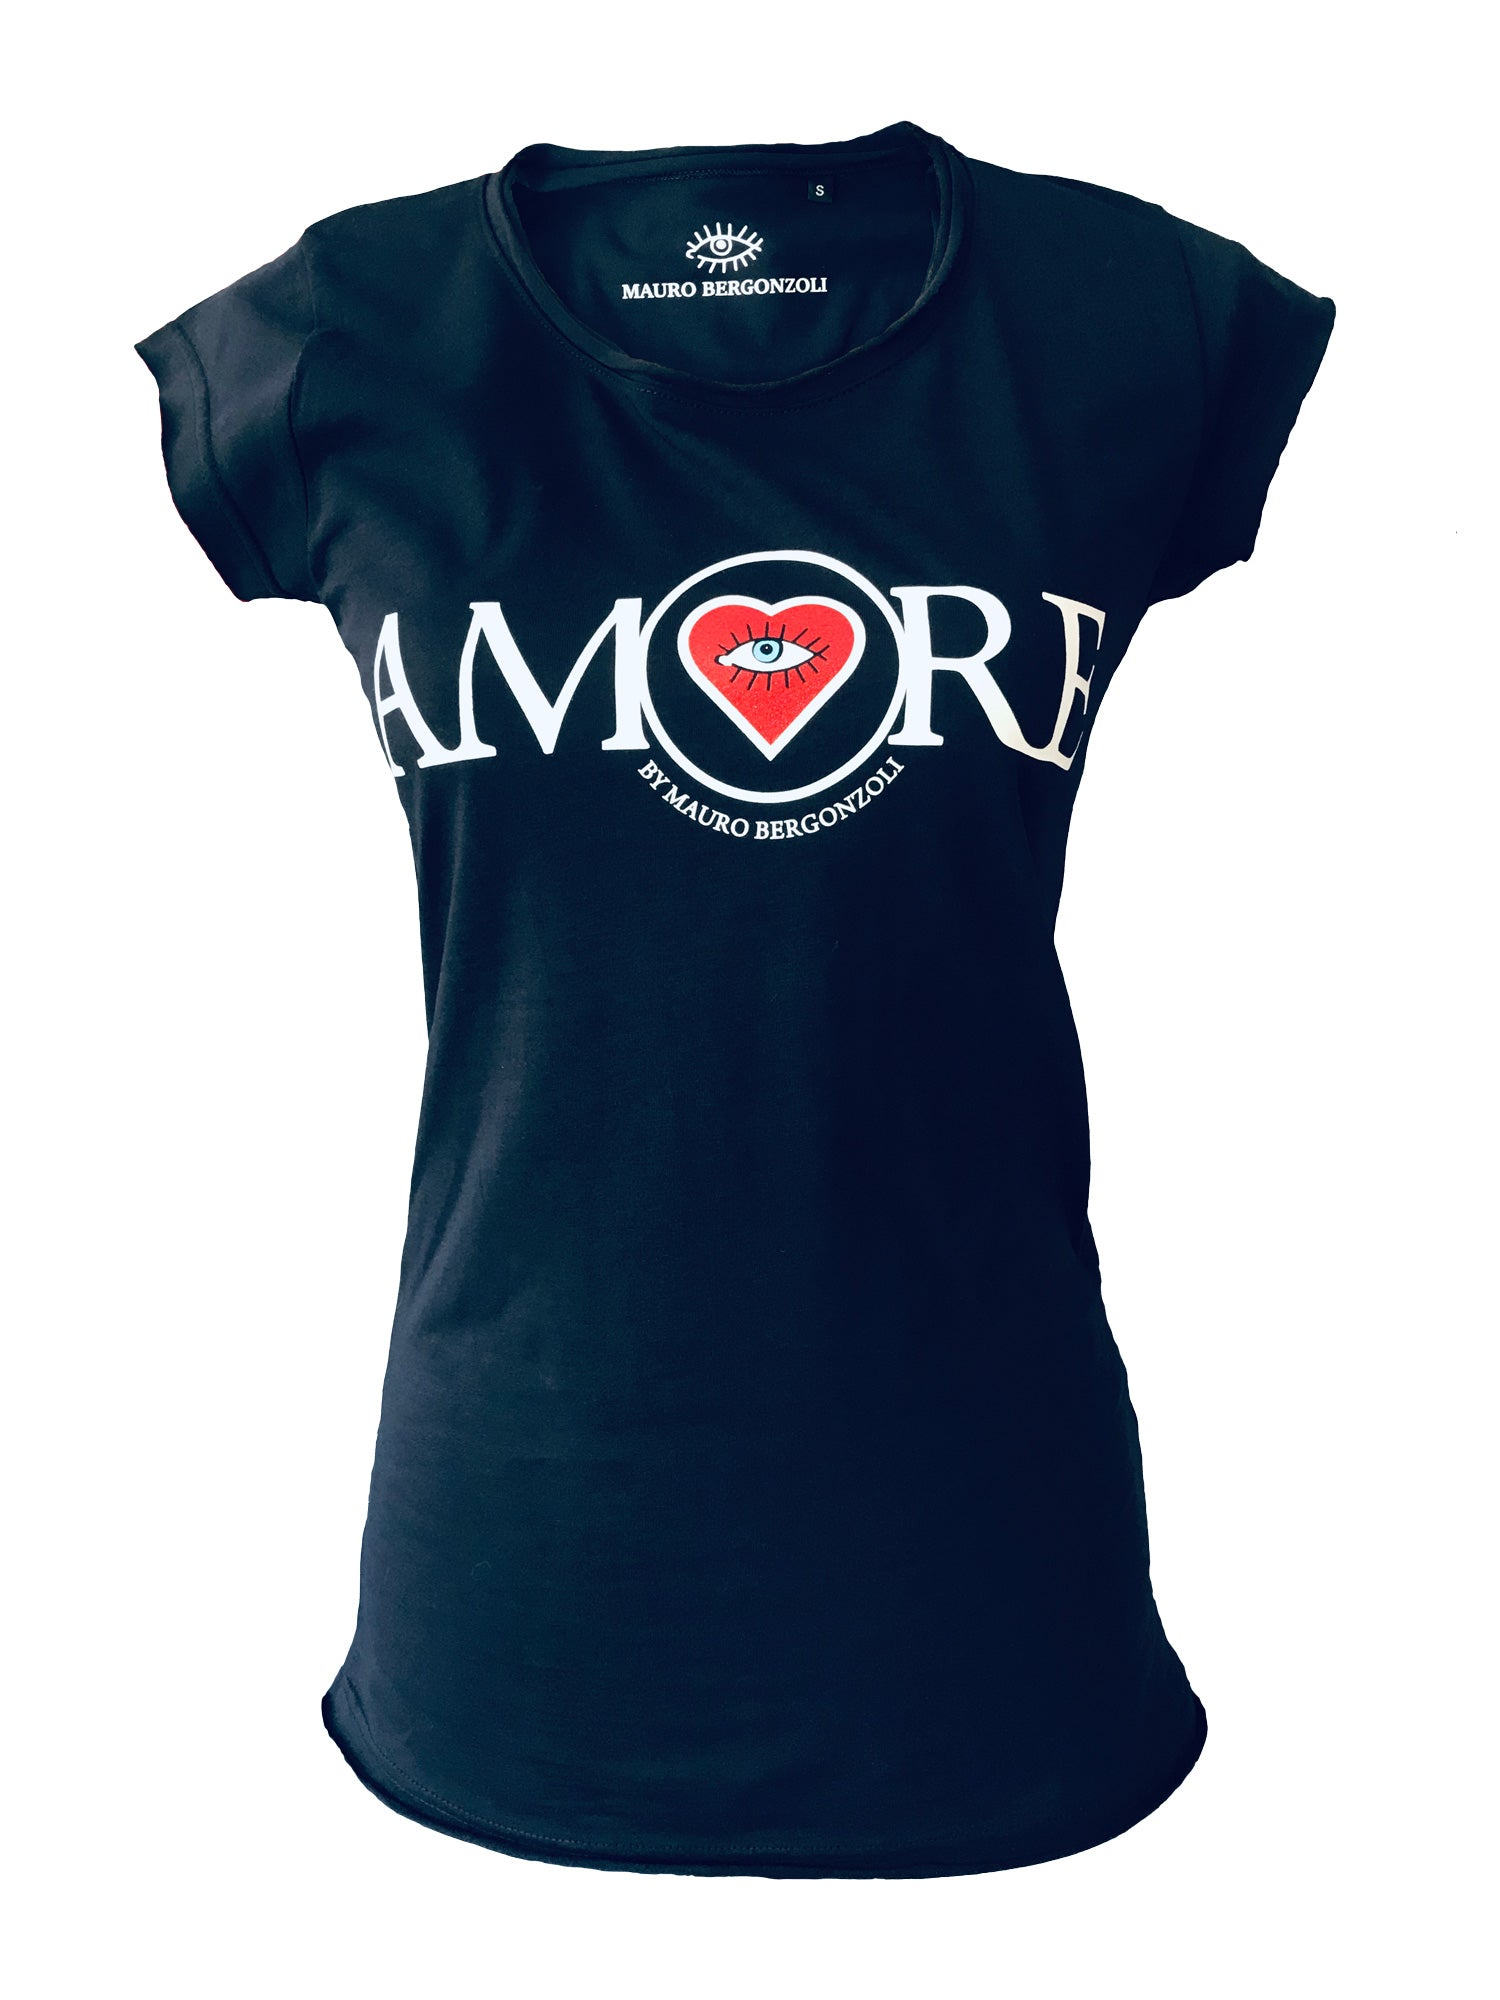 T-Shirt in Colour Navy - AMORE by Mauro Bergonzoli